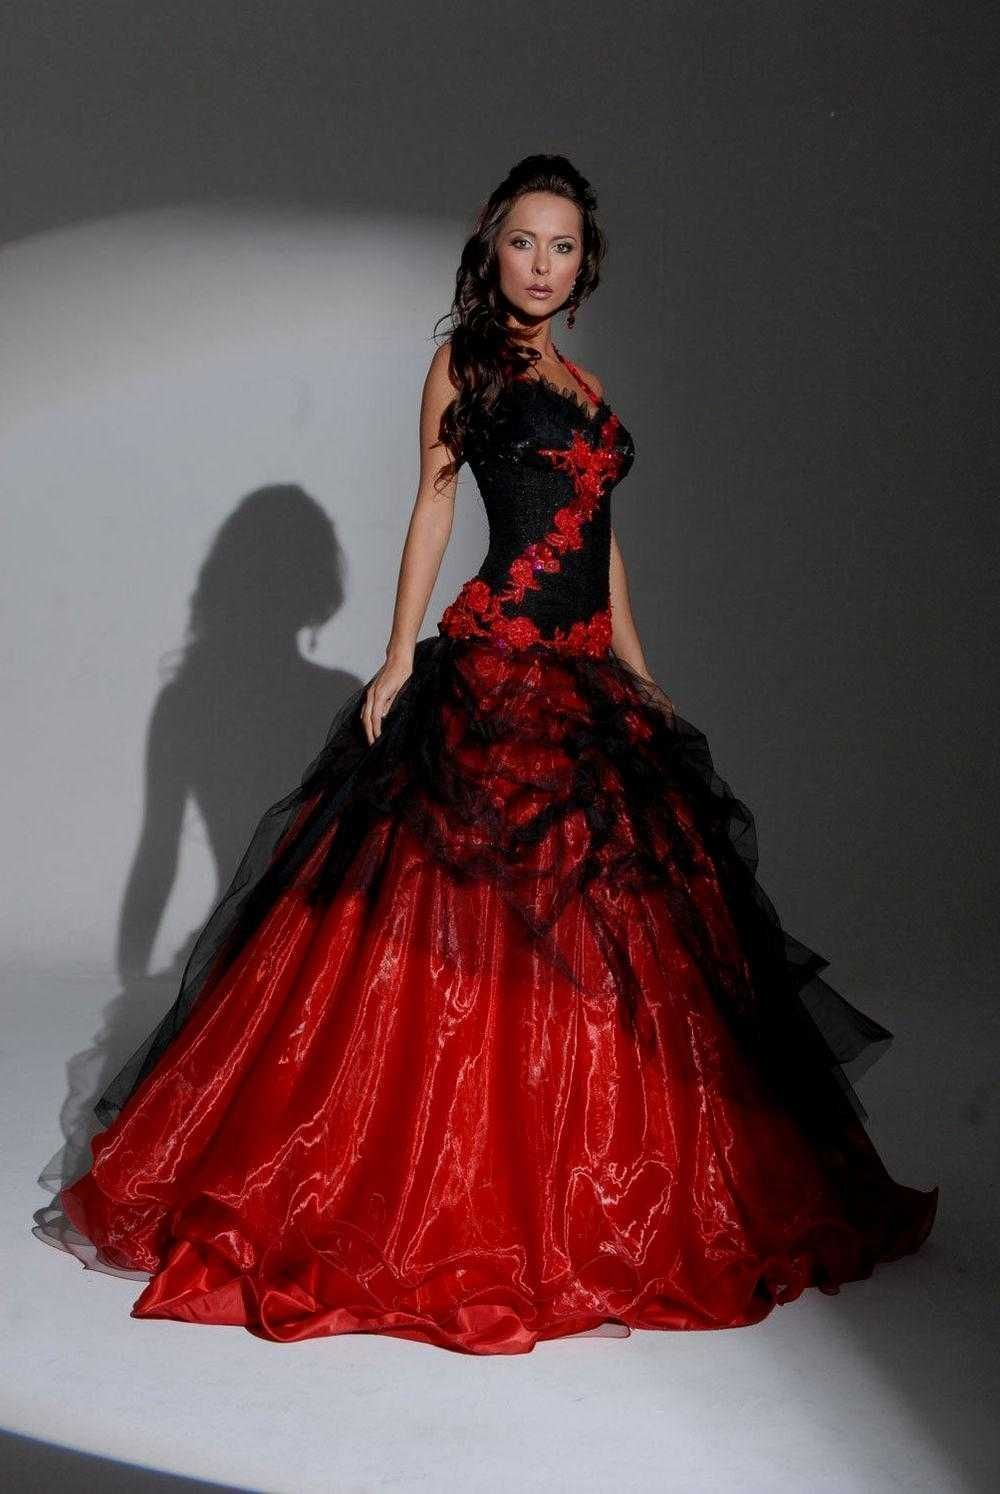 20 Black And Red Wedding Dress Women S Dresses For Weddings Check More At Http Svesty Com Black Red Wedding Dresses Gothic Wedding Dress Black Red Wedding [ 1494 x 1000 Pixel ]